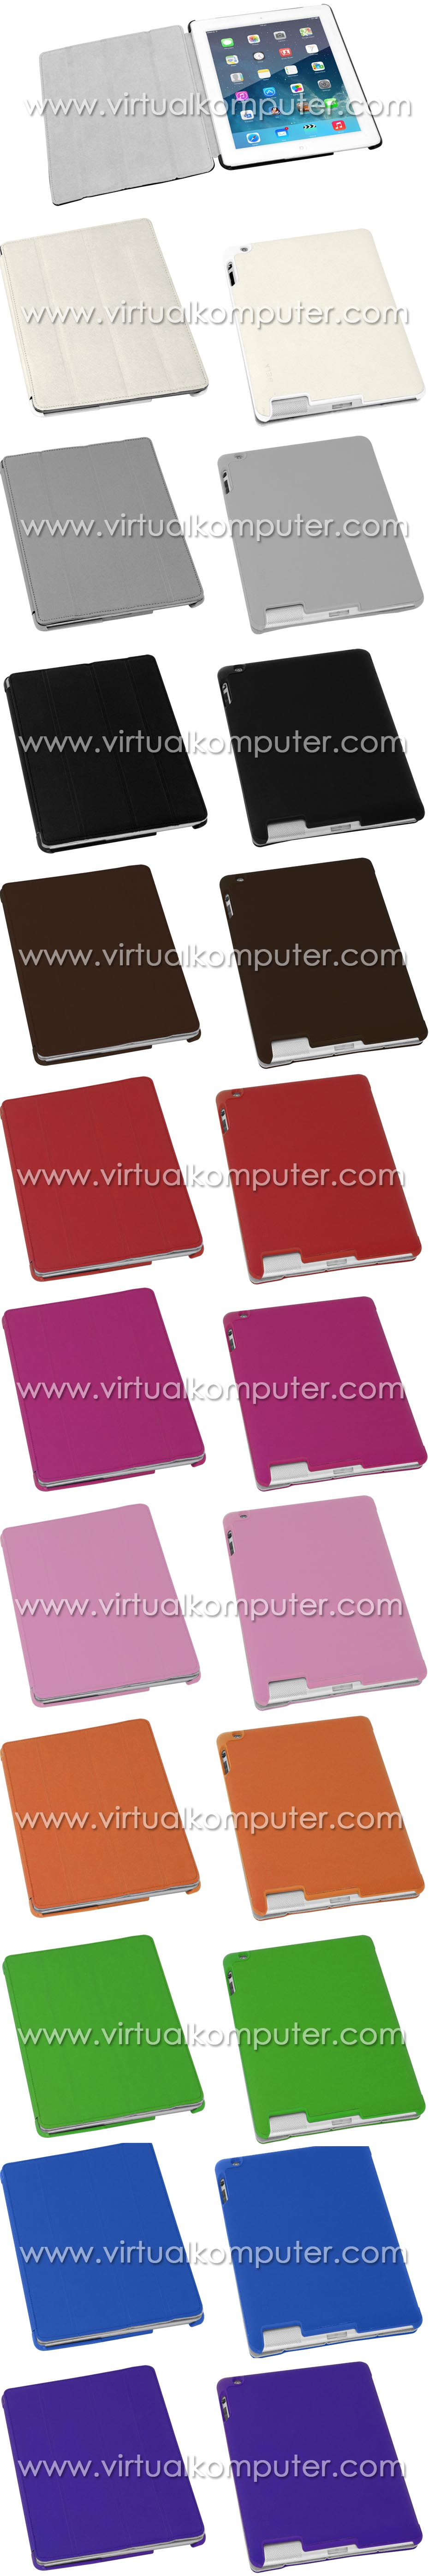 Smart Case (Leather) for iPad 2, 3, 4 Overview